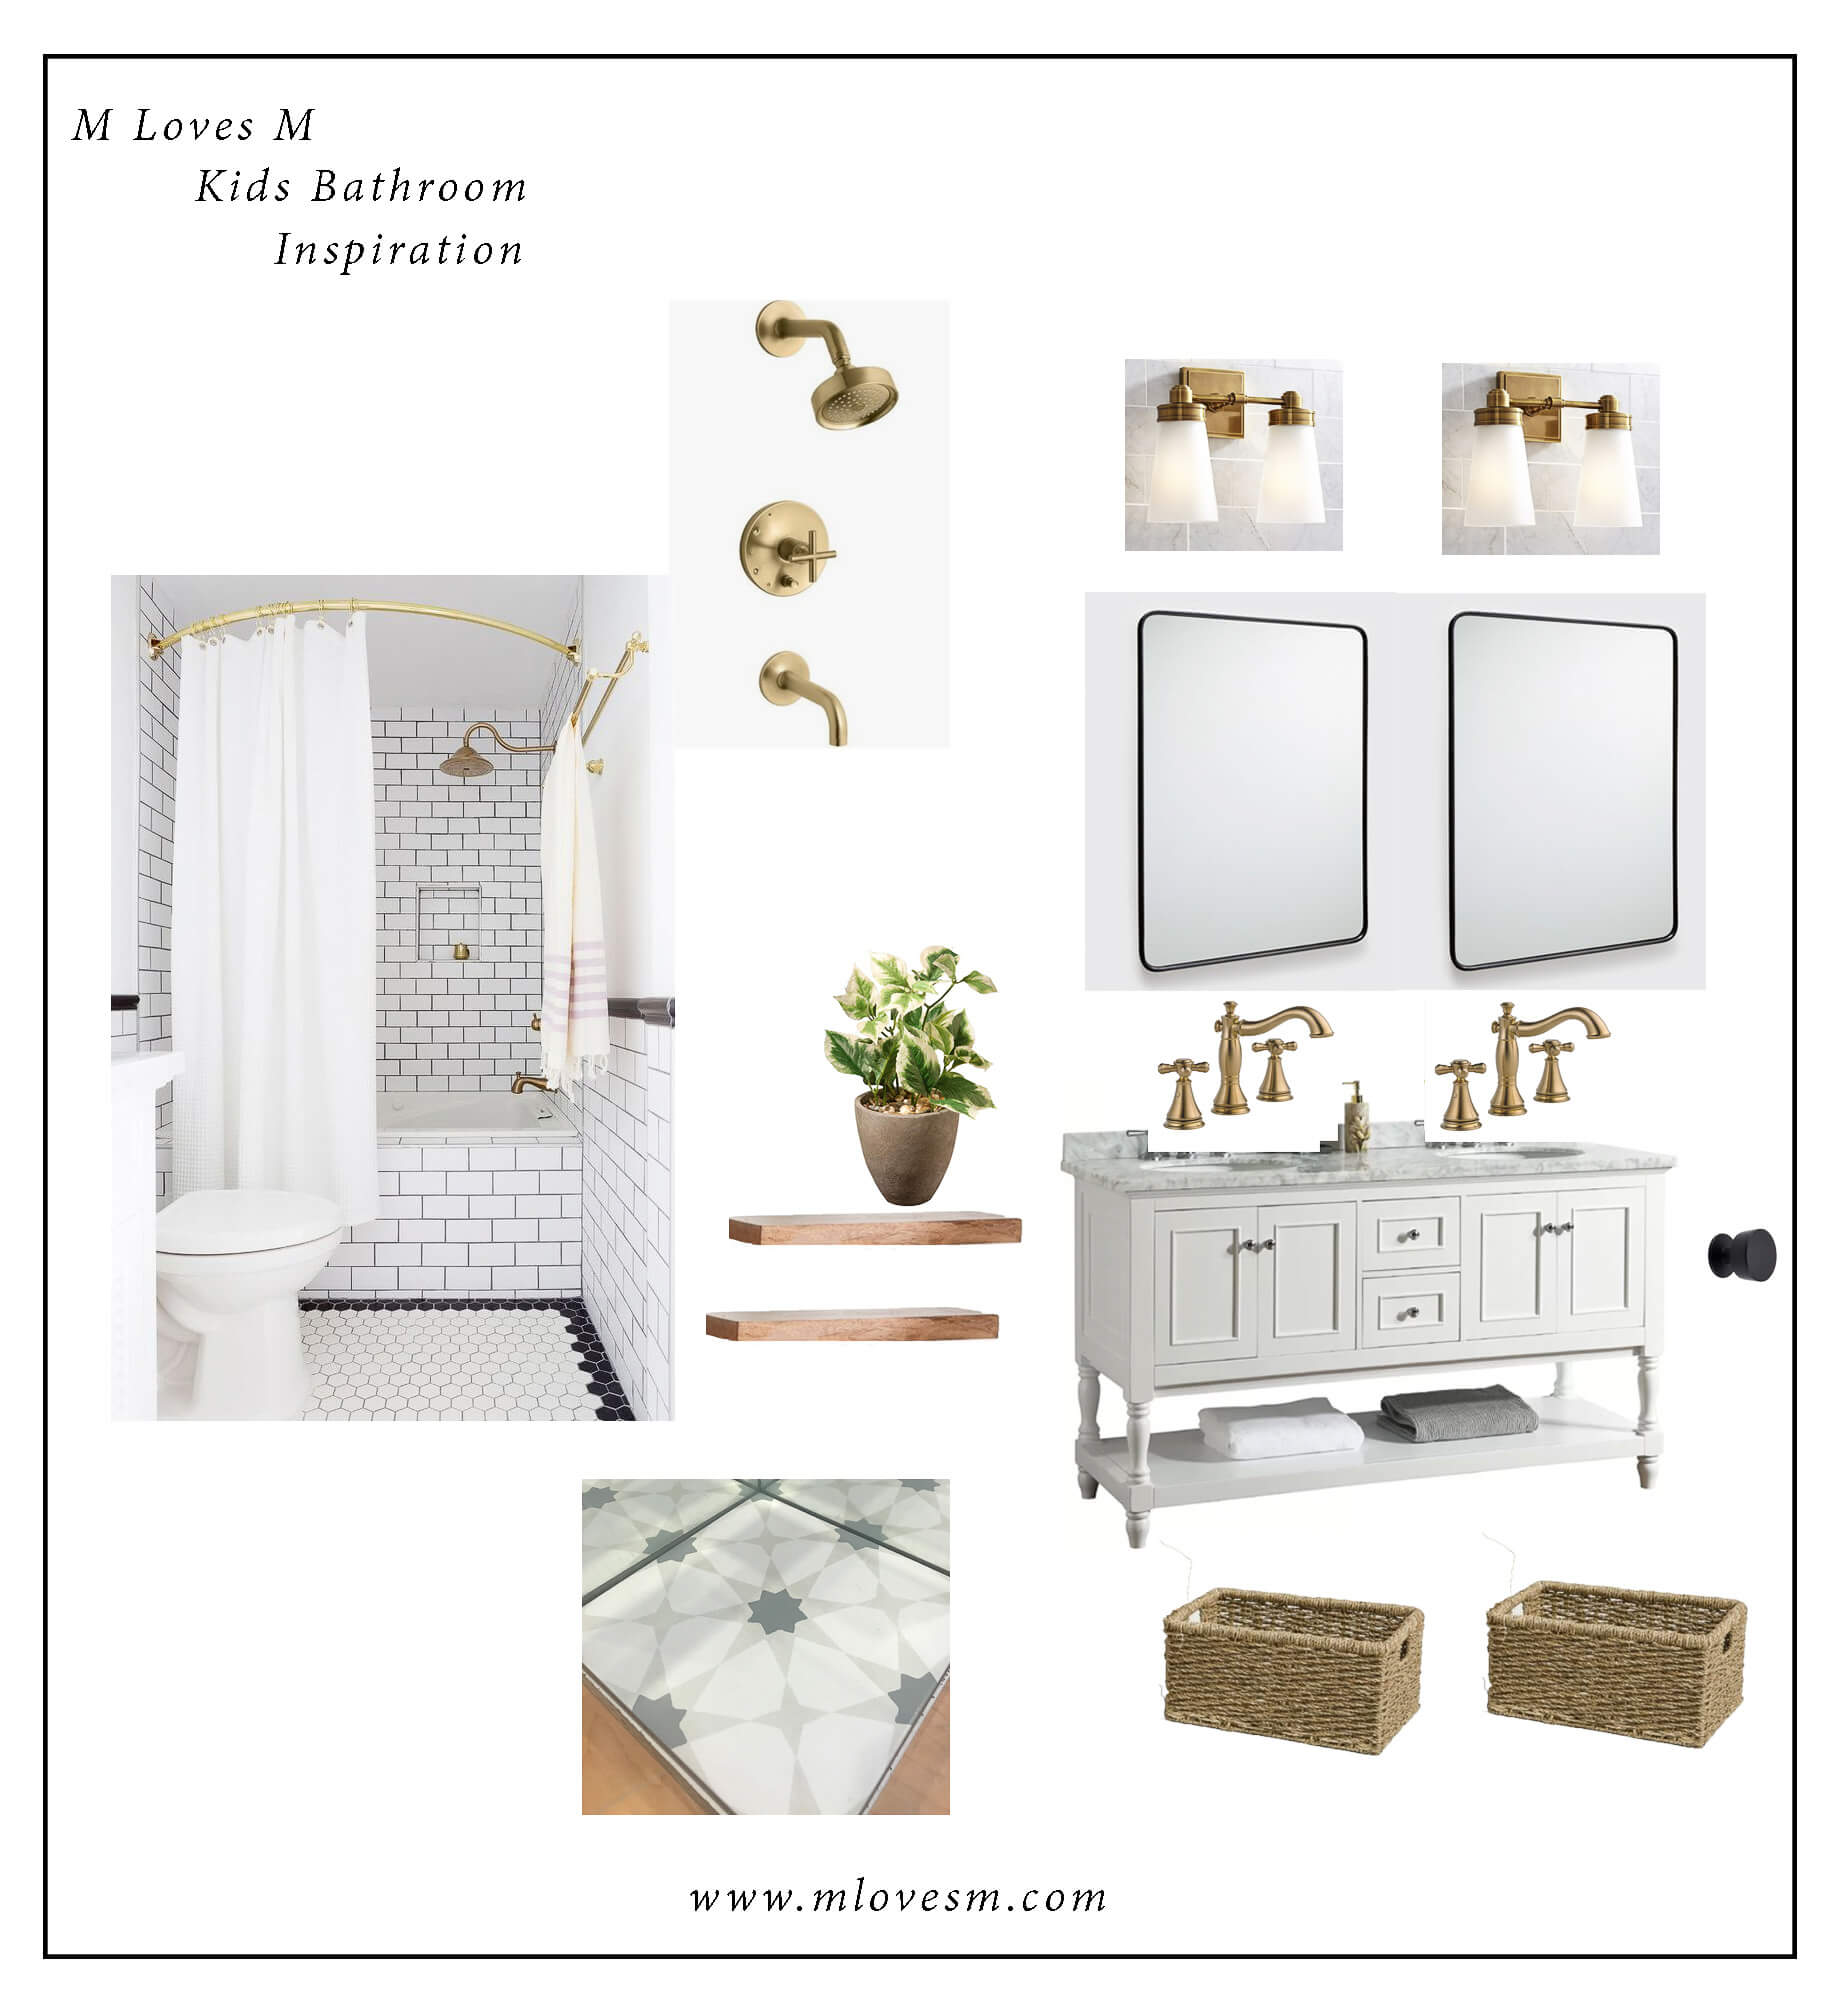 This is our kids' bathroom redesign inspiration! - M Loves M @marmar